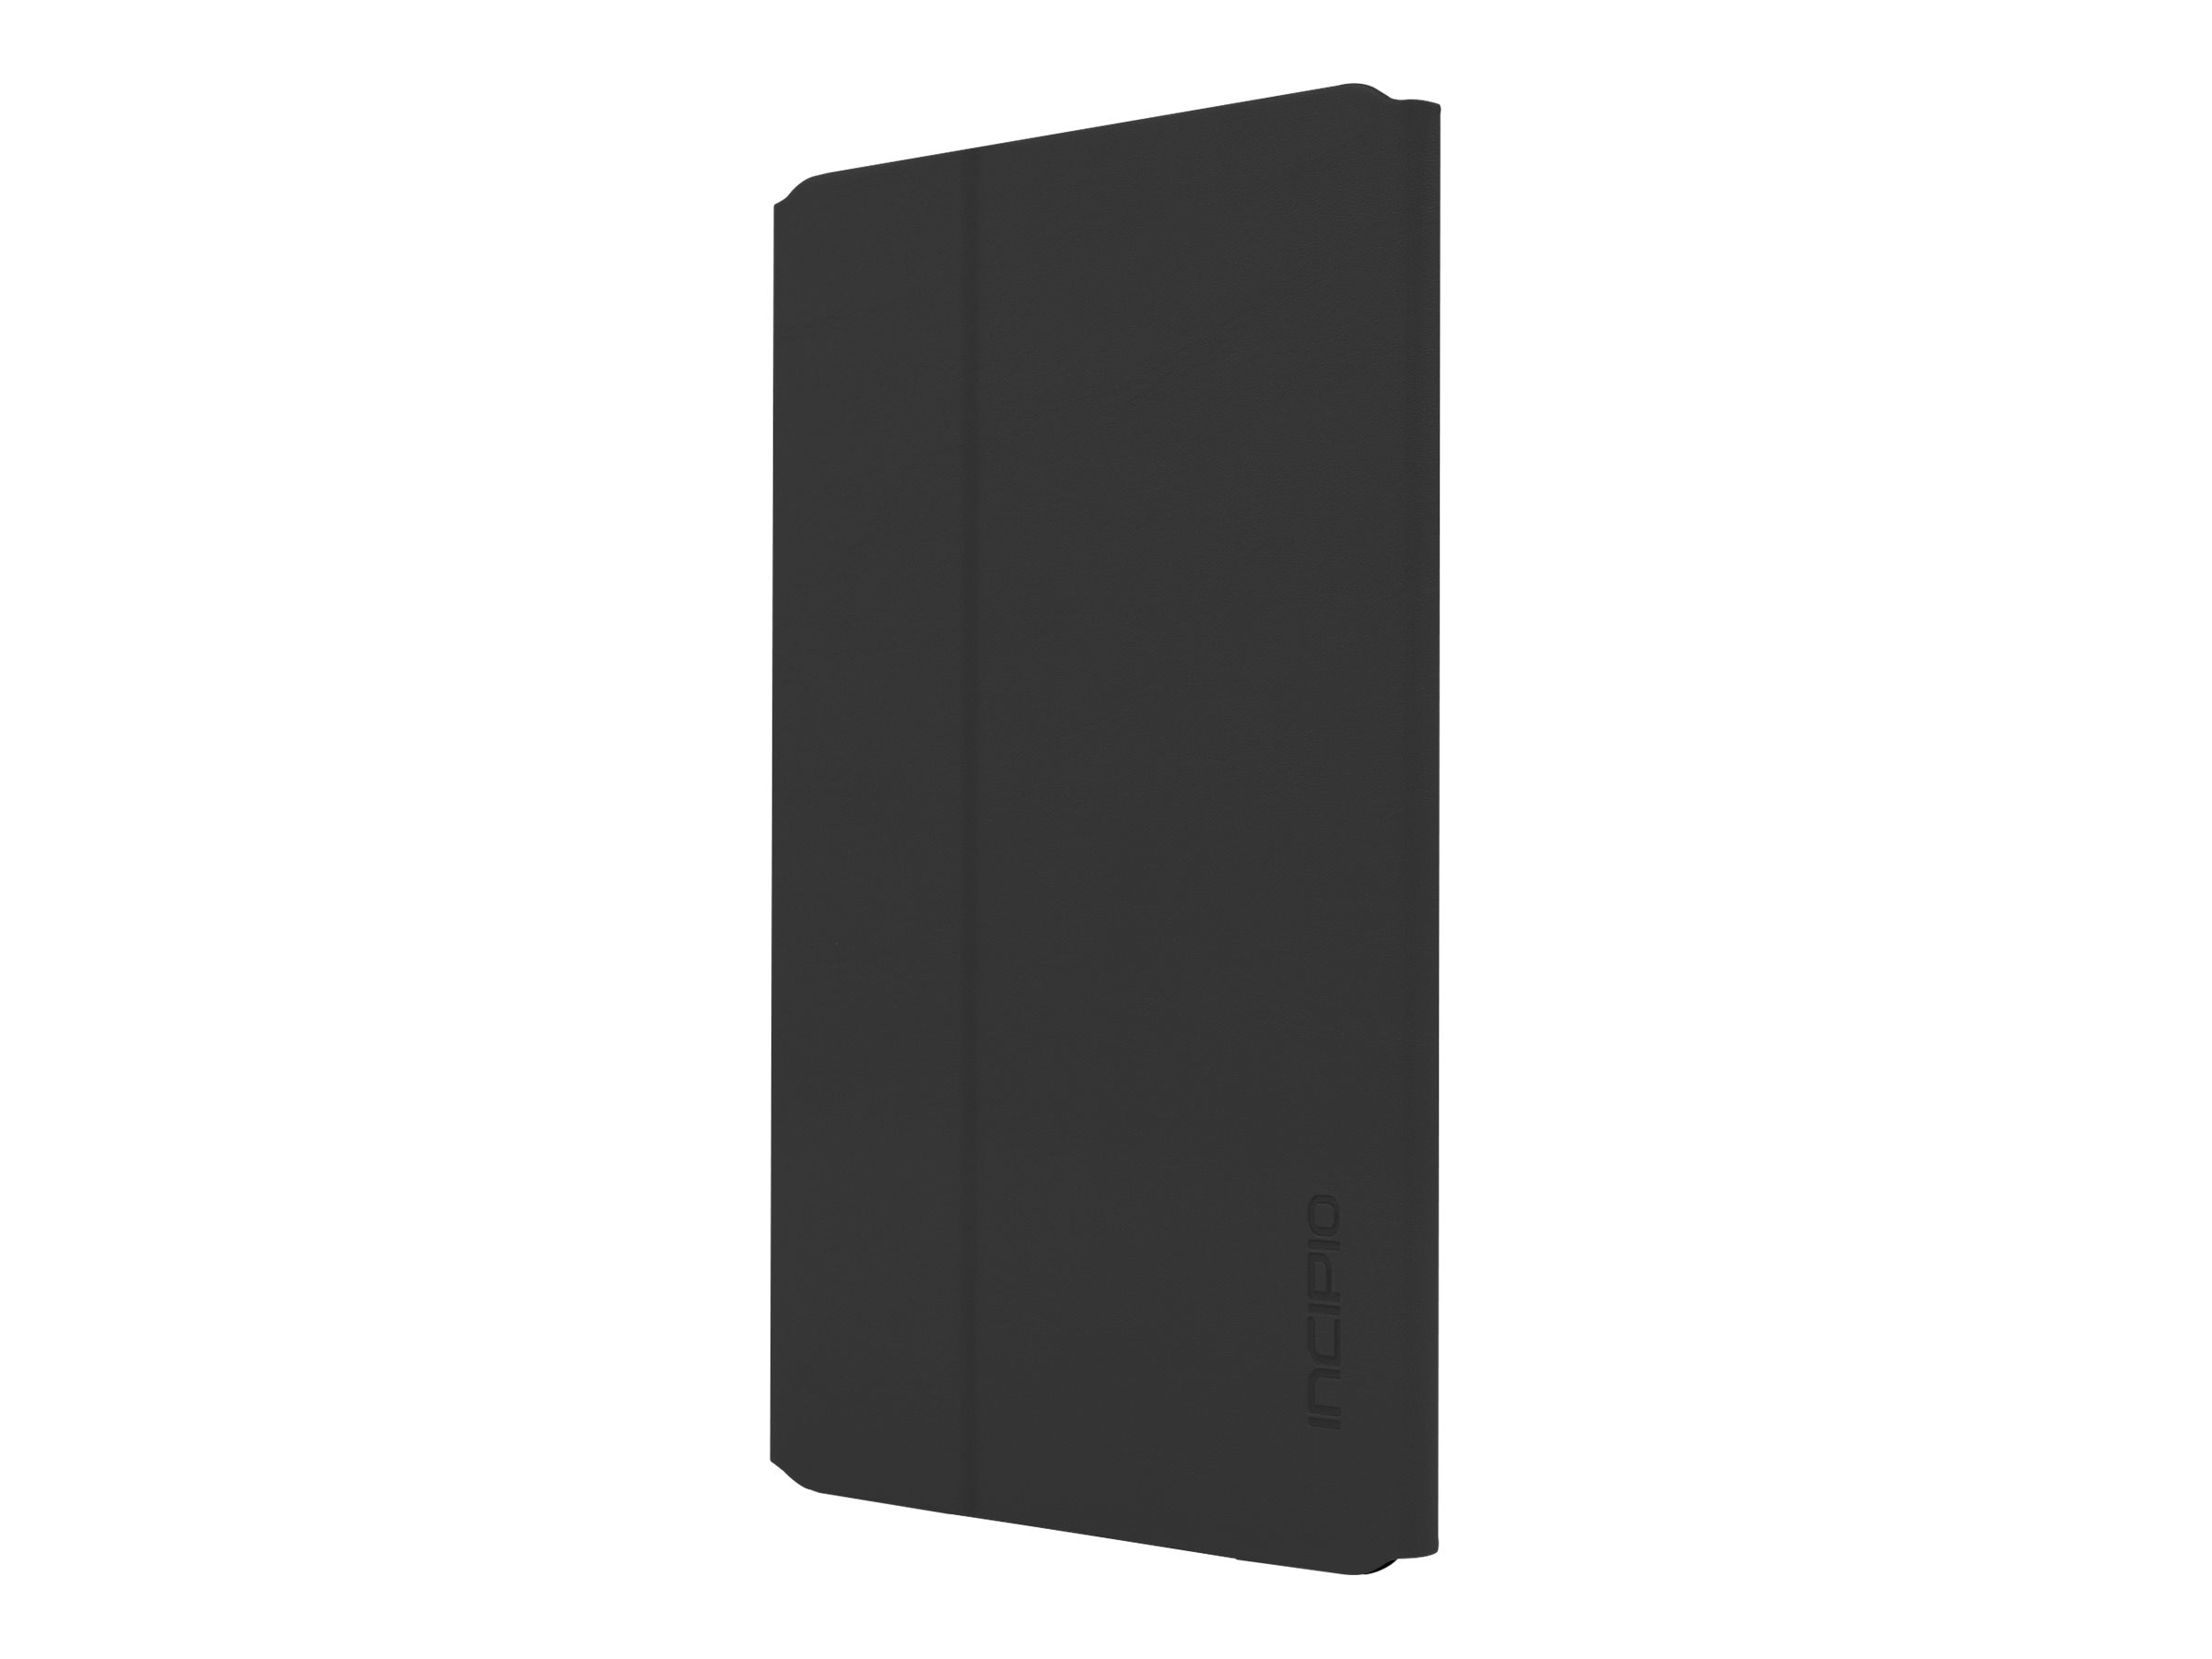 Incipio Faraday Folio Case w  Magnetic Fold-over Closure for iPad mini 4, Black